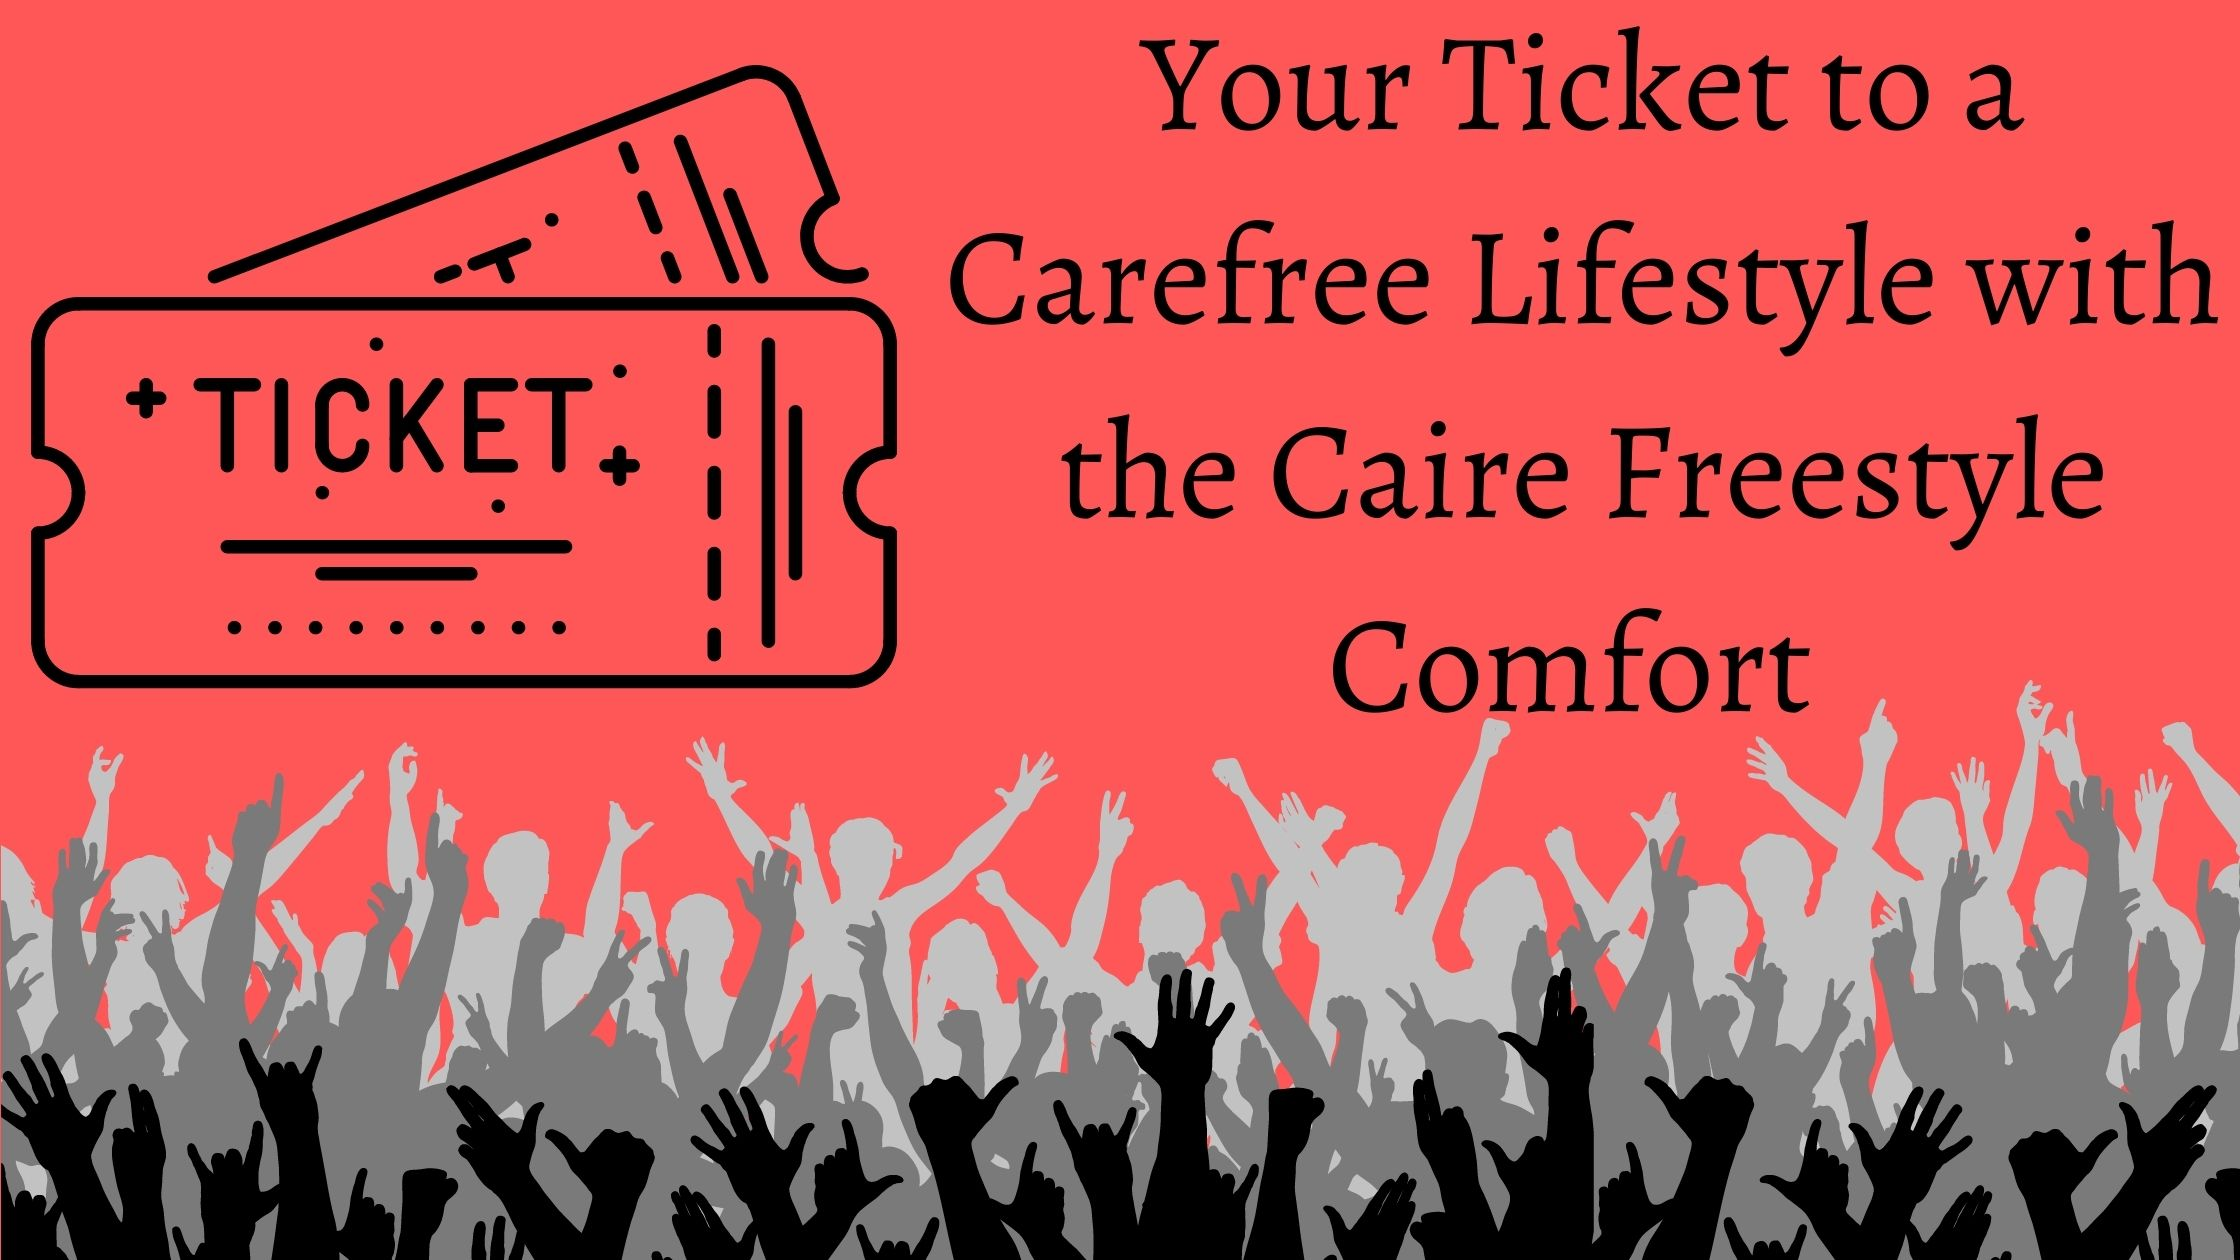 Your Ticket to a Carefree Lifestyle with the Caire Freestyle Comfort